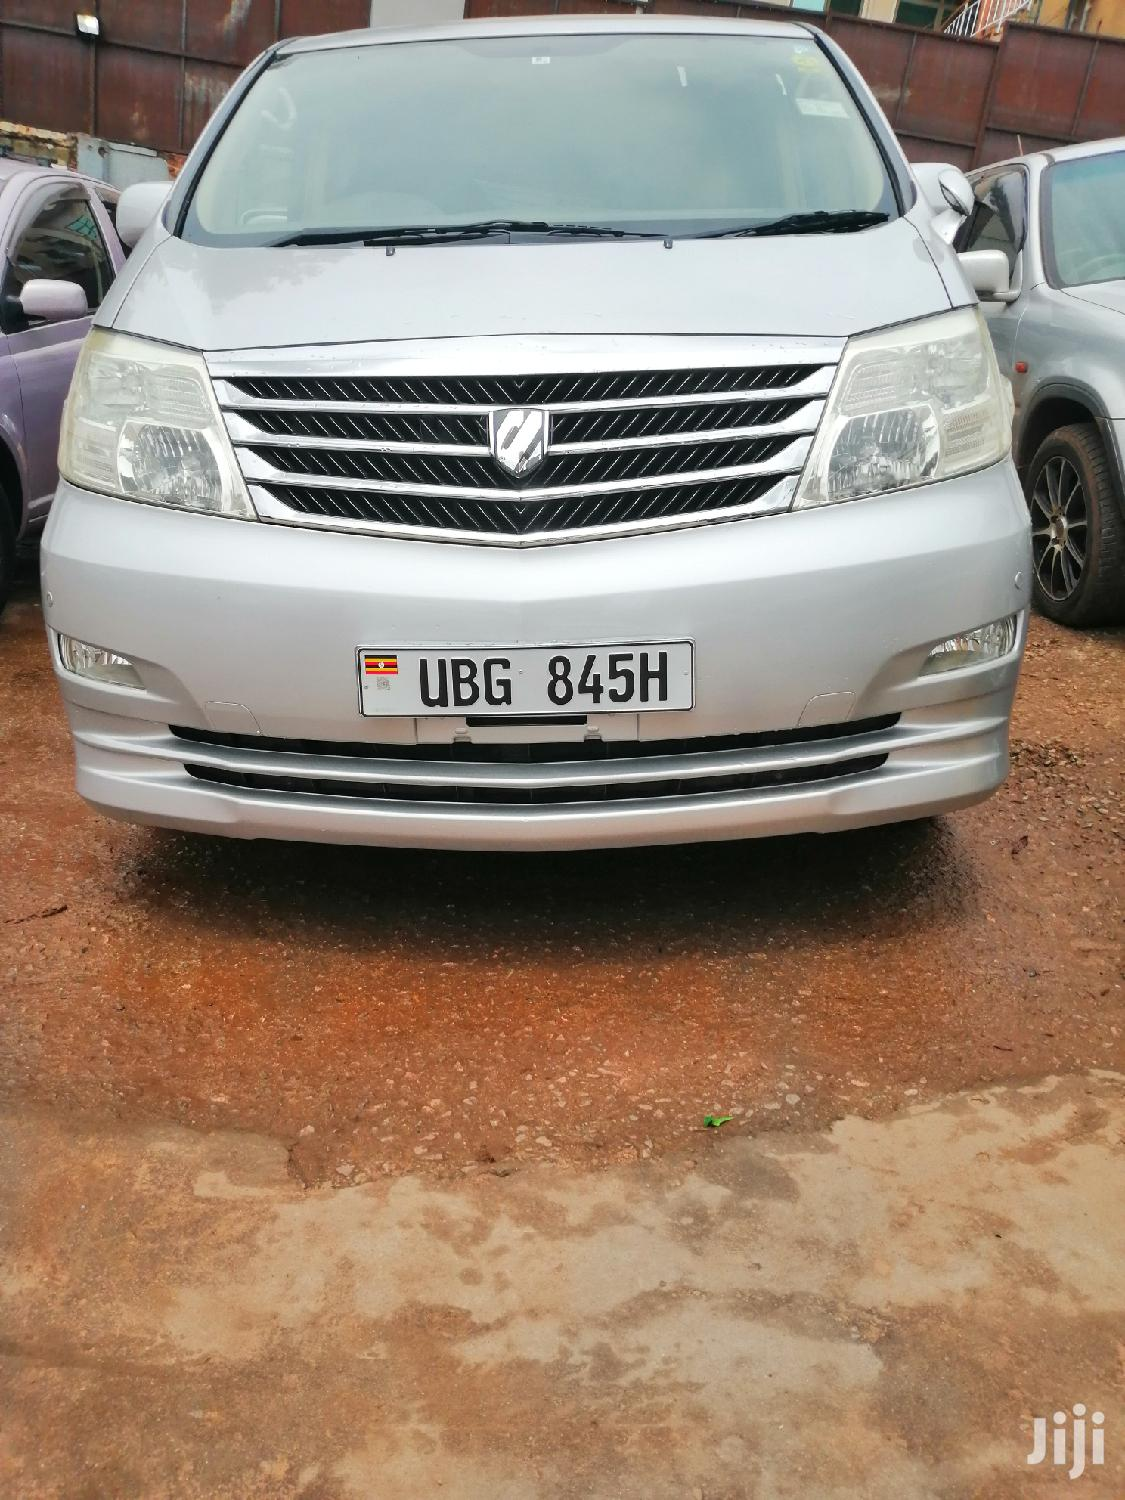 Toyota Alphard 2005 Silver | Cars for sale in Kampala, Central Region, Uganda